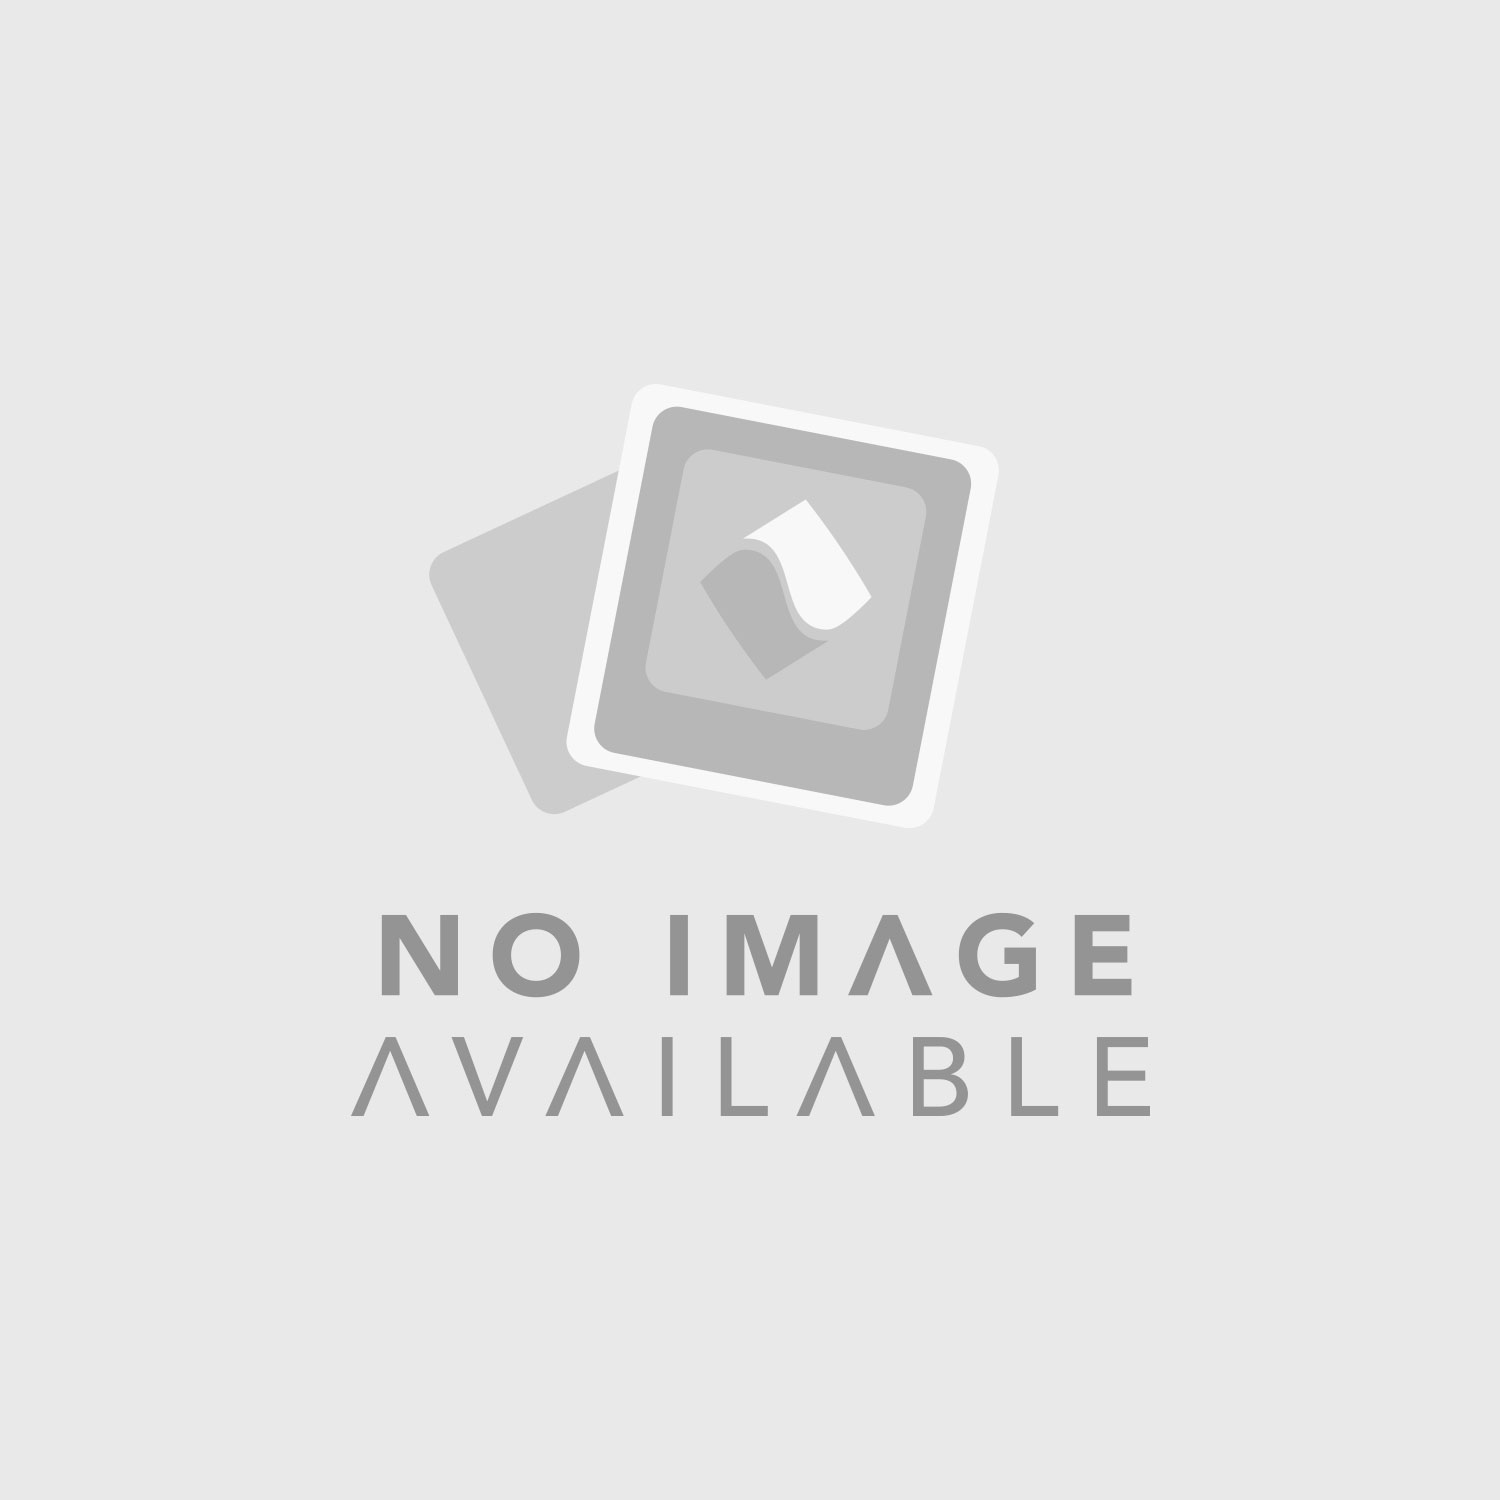 Neutrik BST-BNC-1 Boot for rearTWIST BNC Series (Brown)